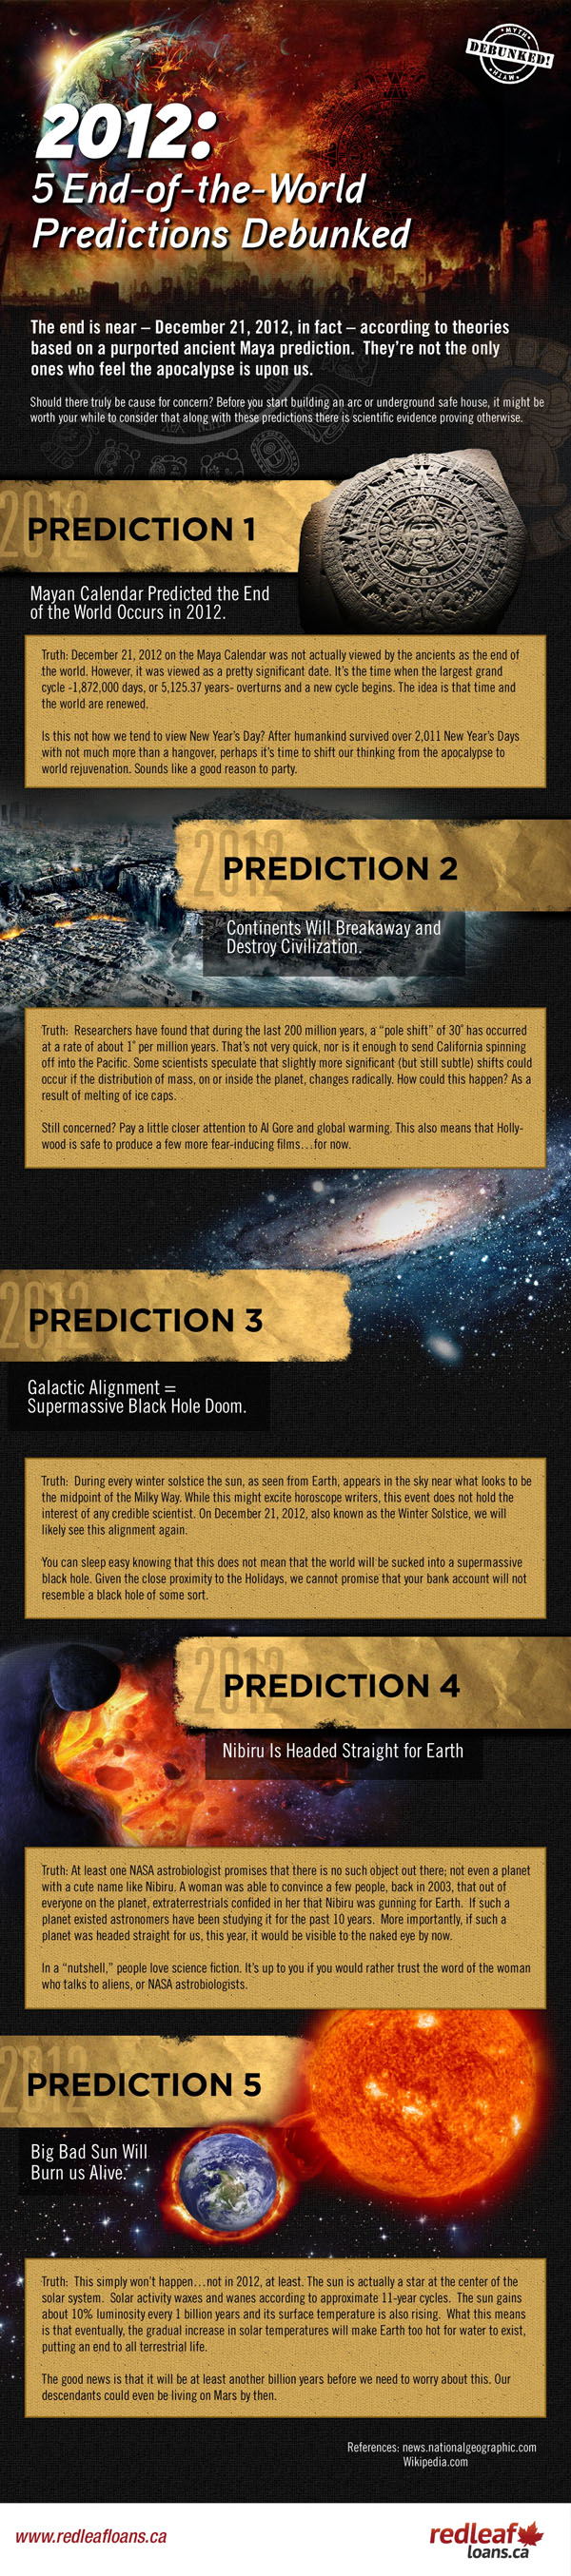 2012: 5 End-of-the-World Predictions Debunked